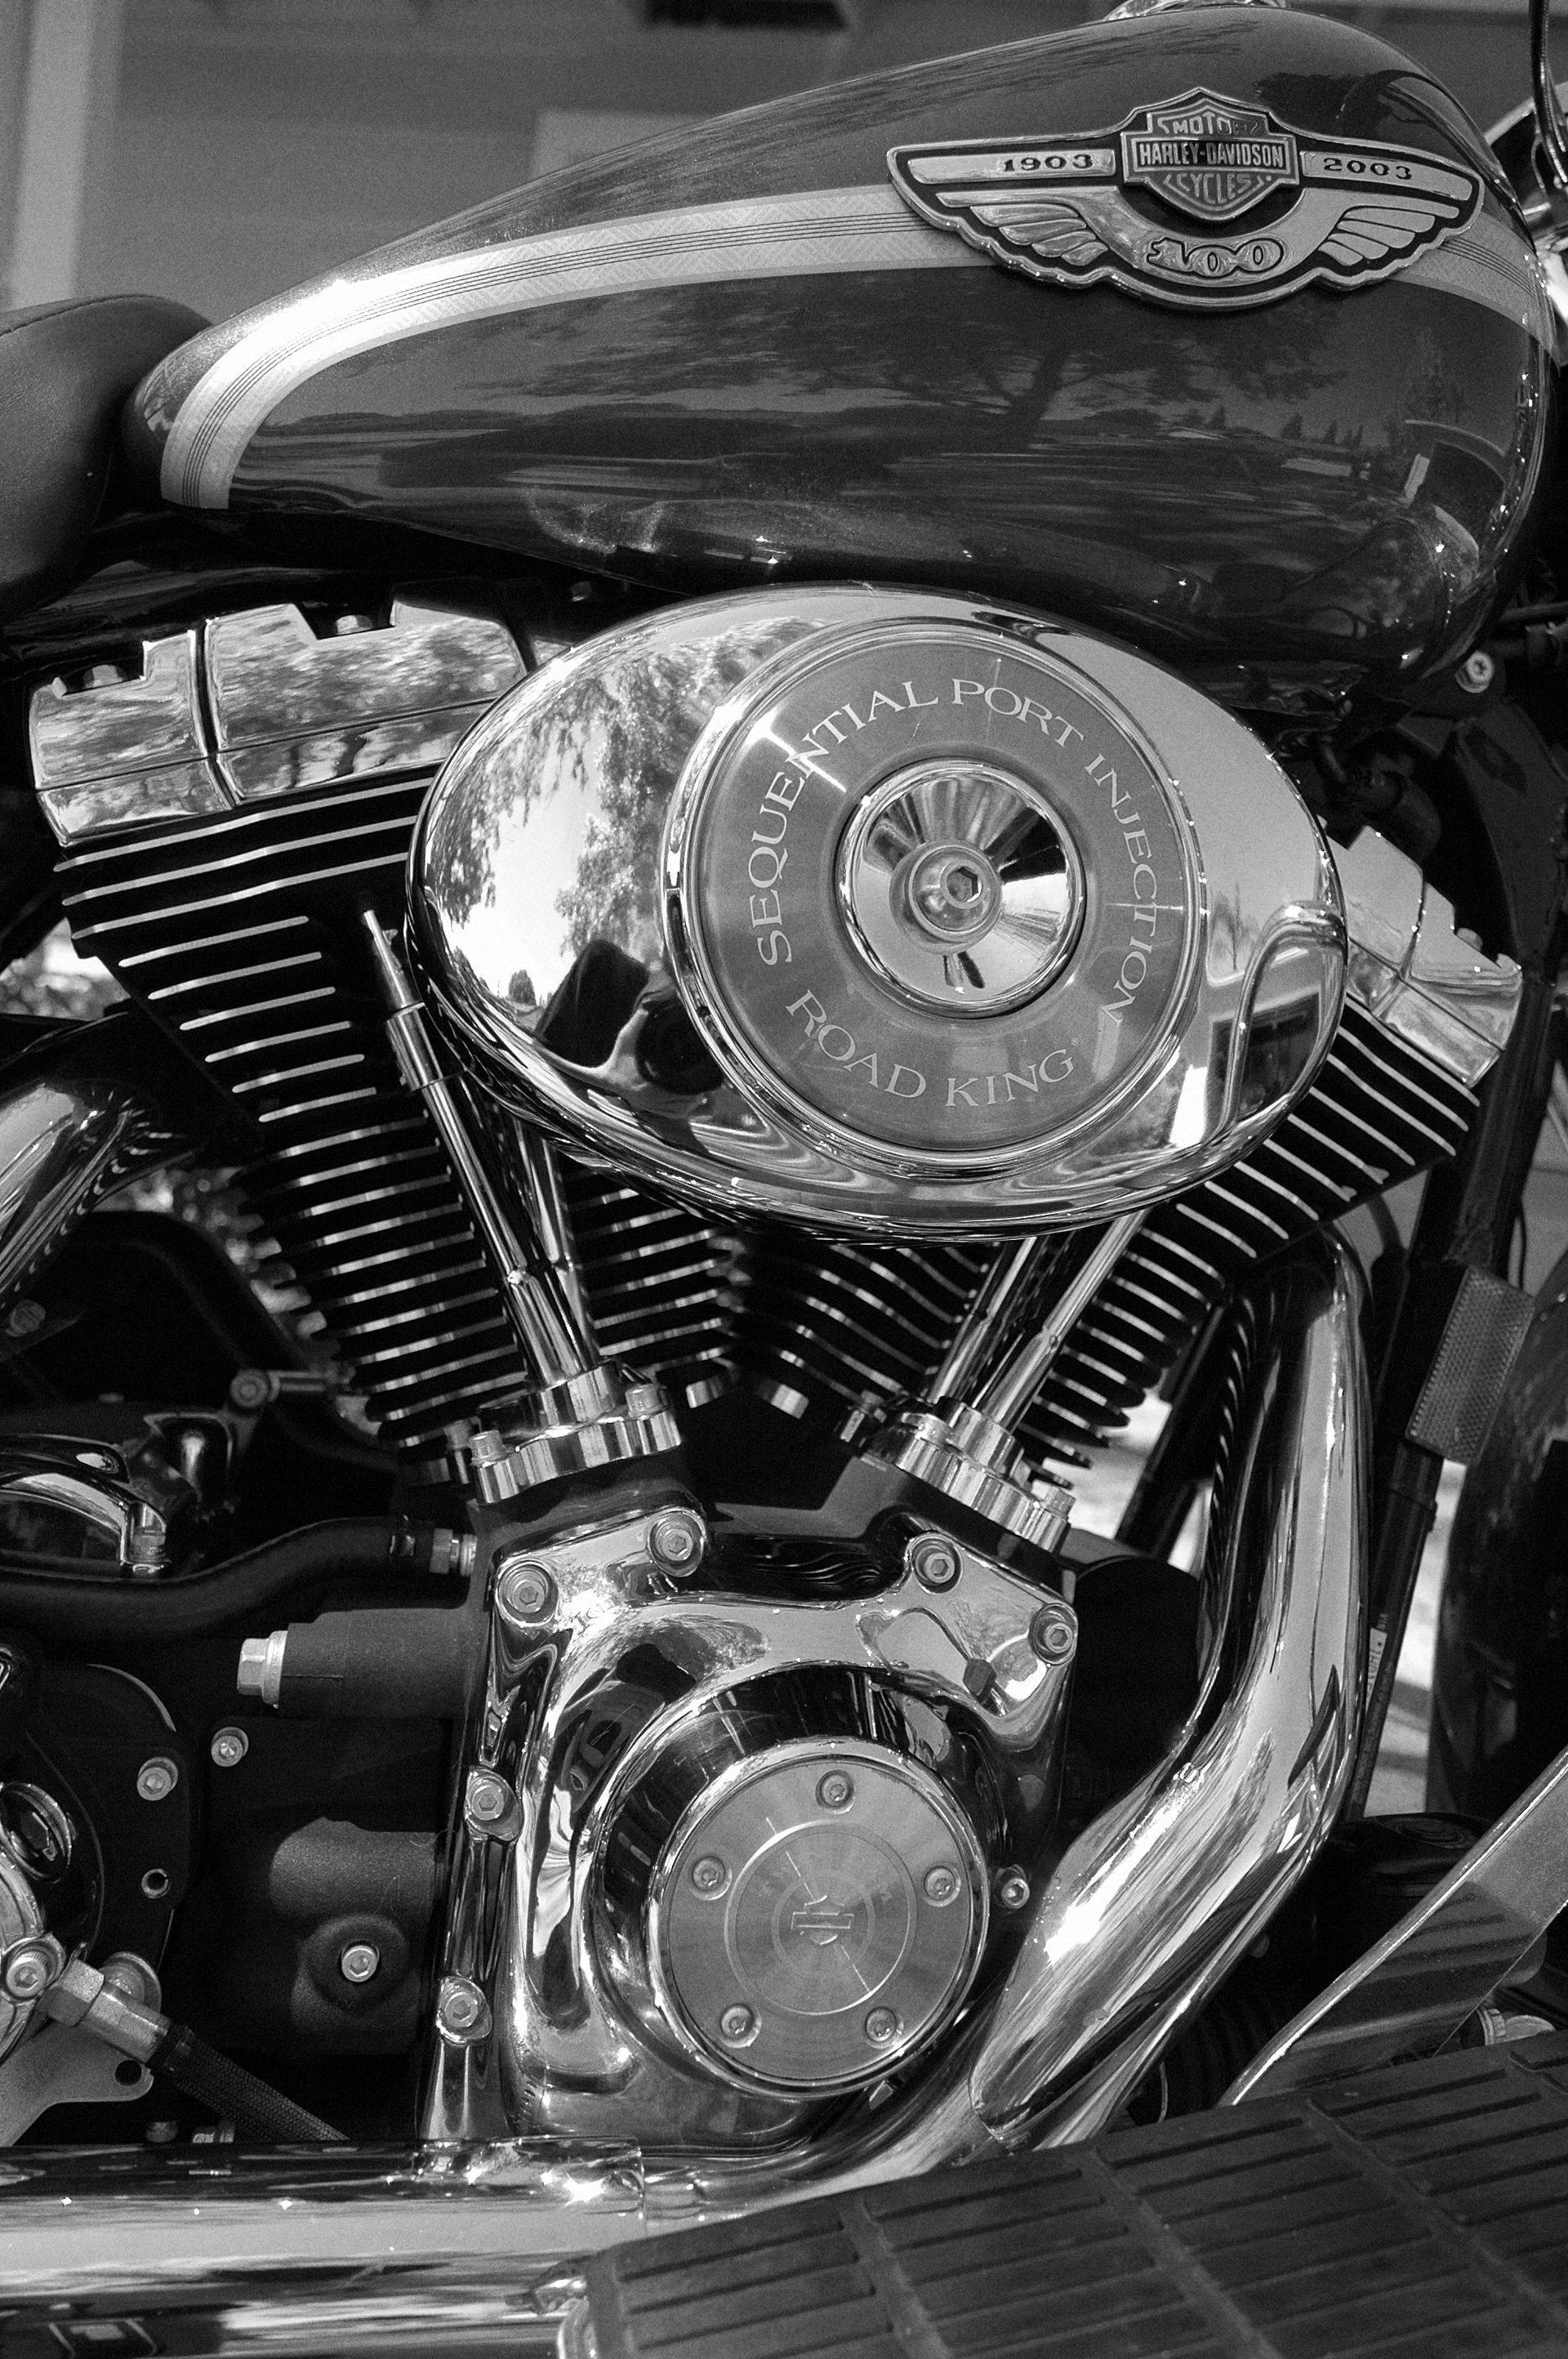 V-twin engine - Wikipedia